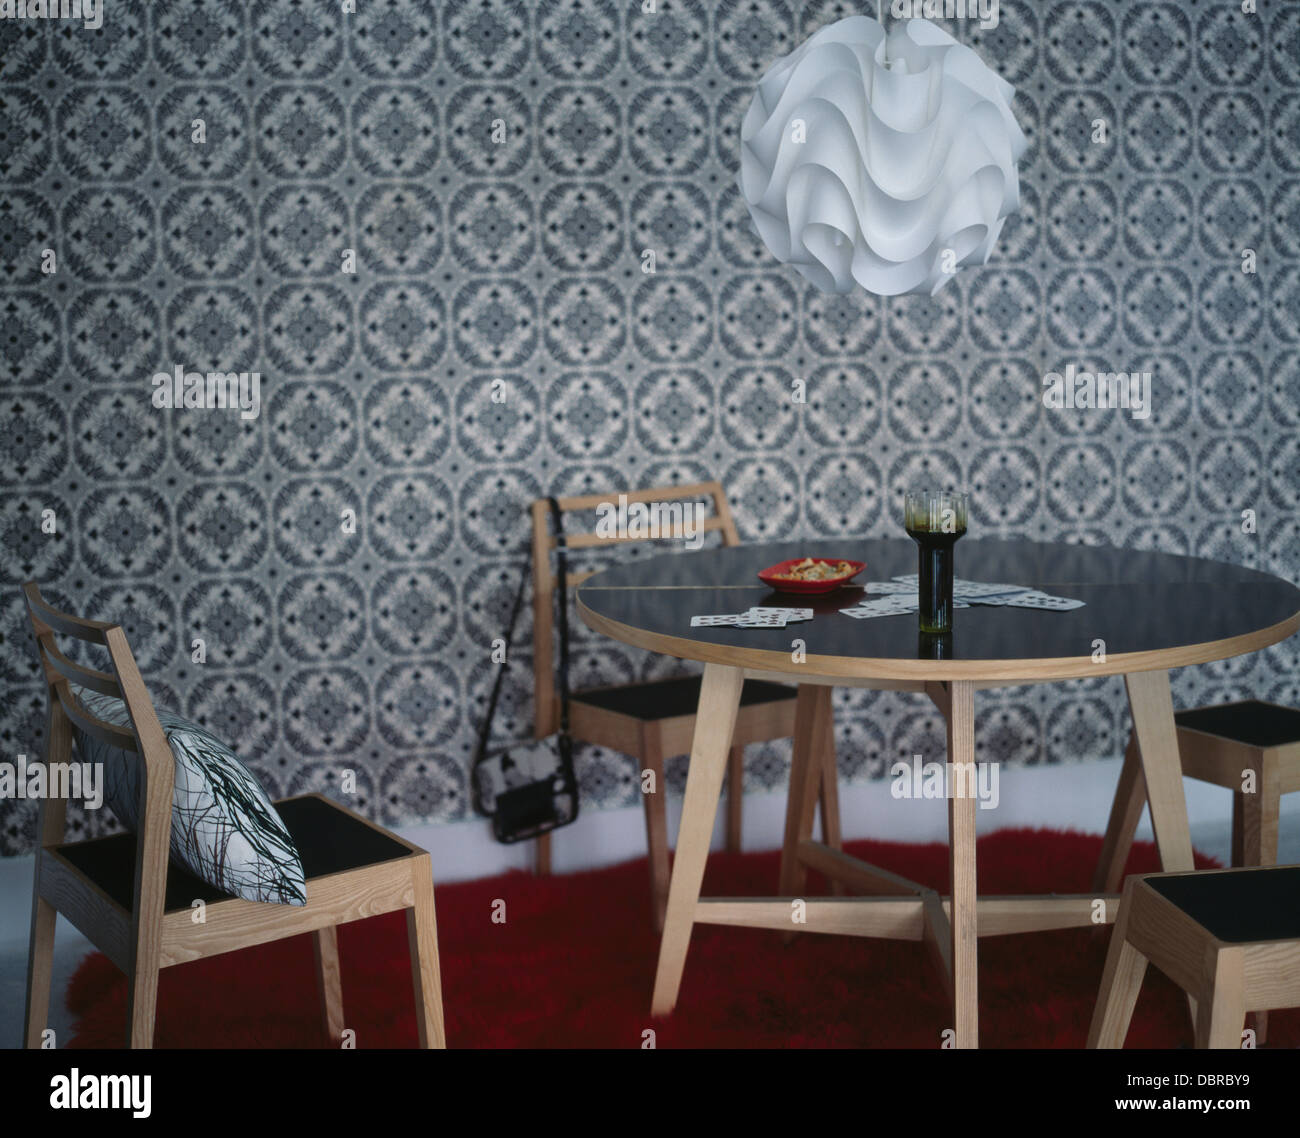 Charmant Folded Plastic Ceiling Light Above Pale Wood Circular Table And Chairs In  Dining Room With Gray Graphic Wallpaper